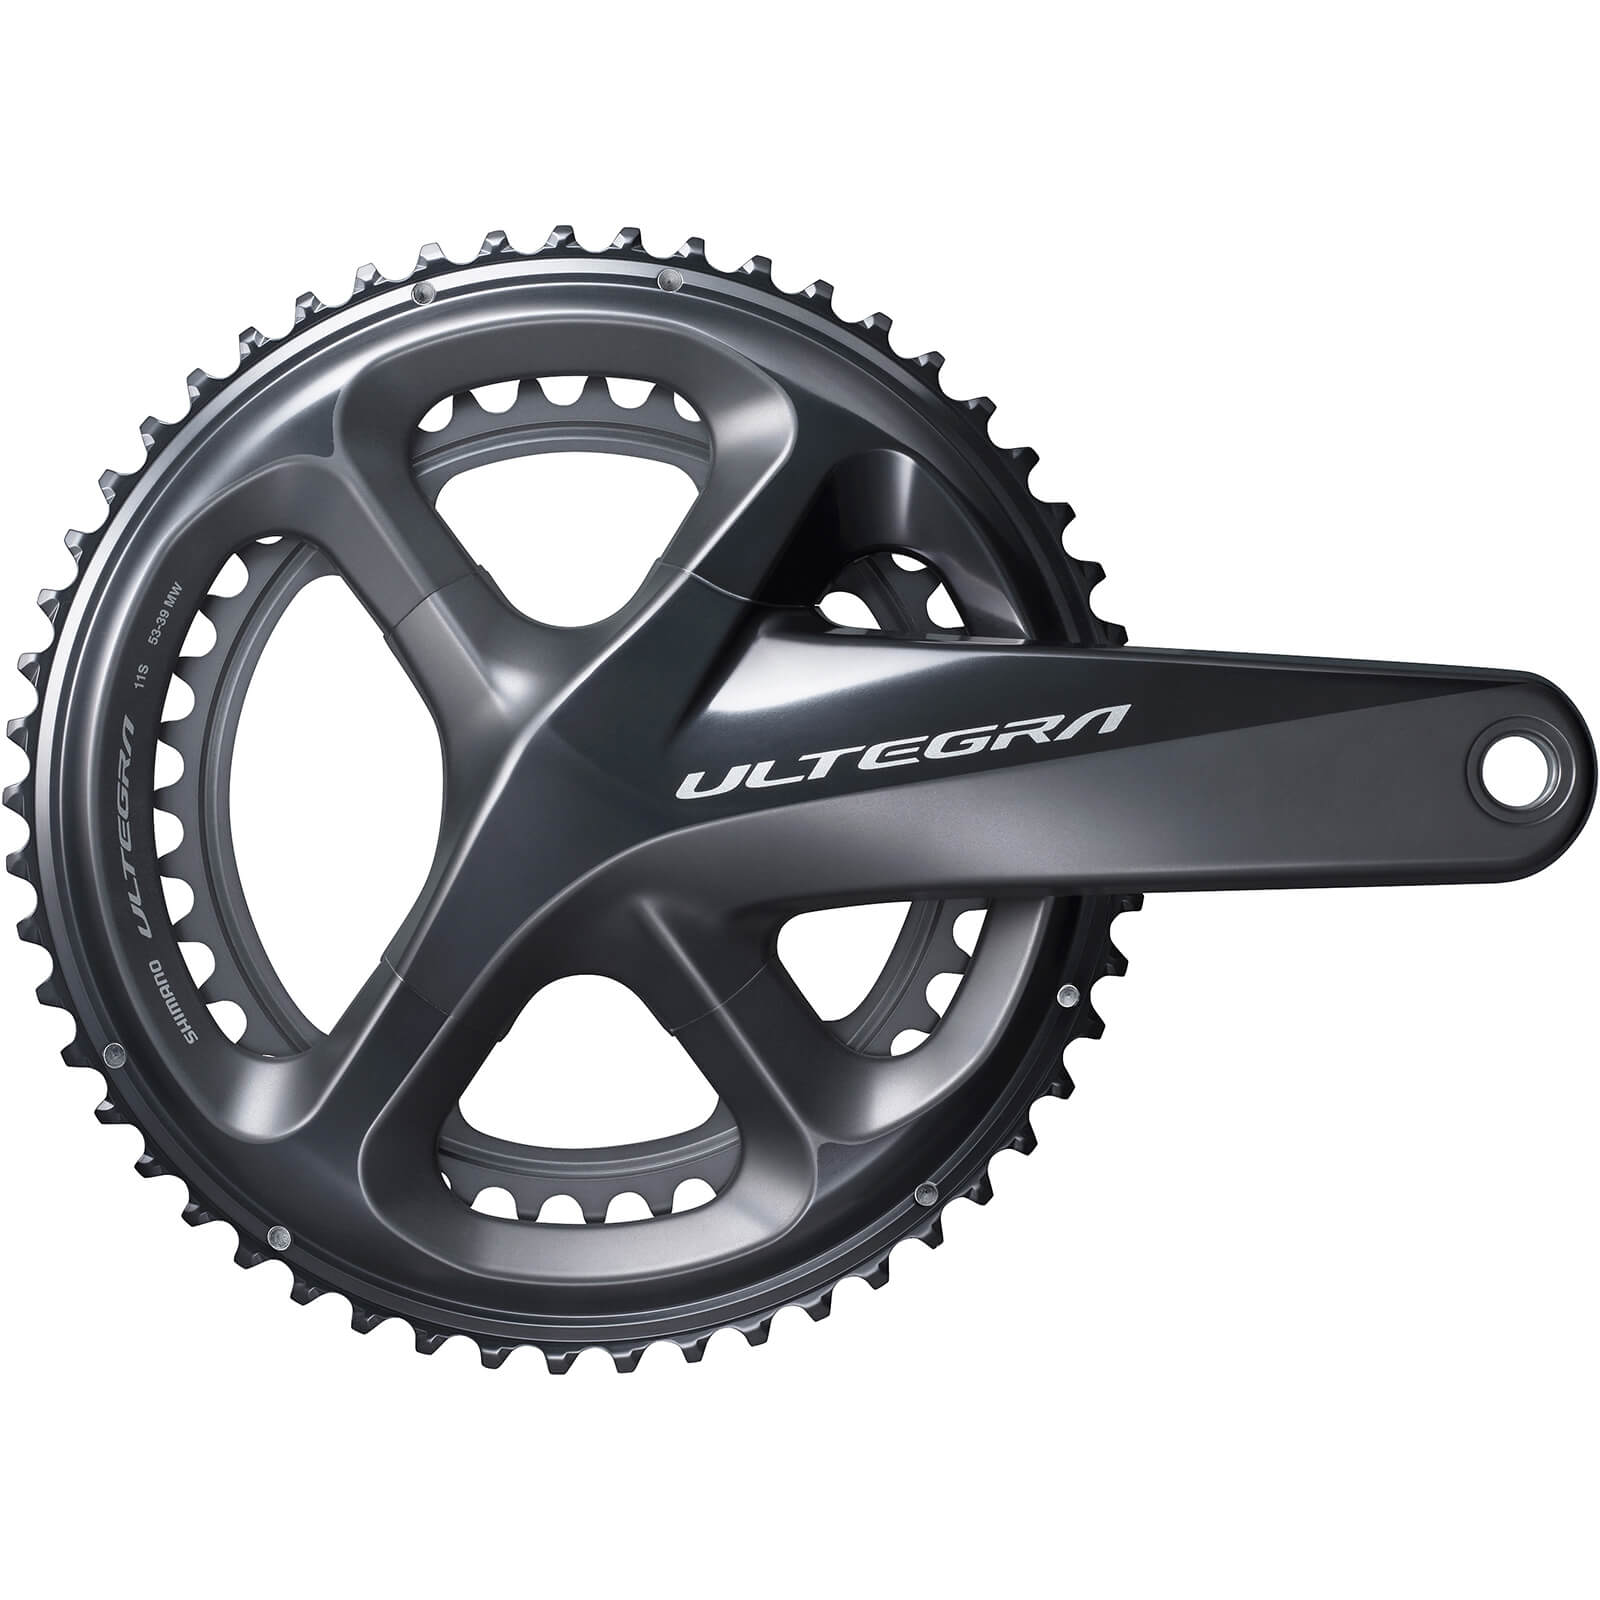 Shimano Ultegra FC-R8000 Chainset